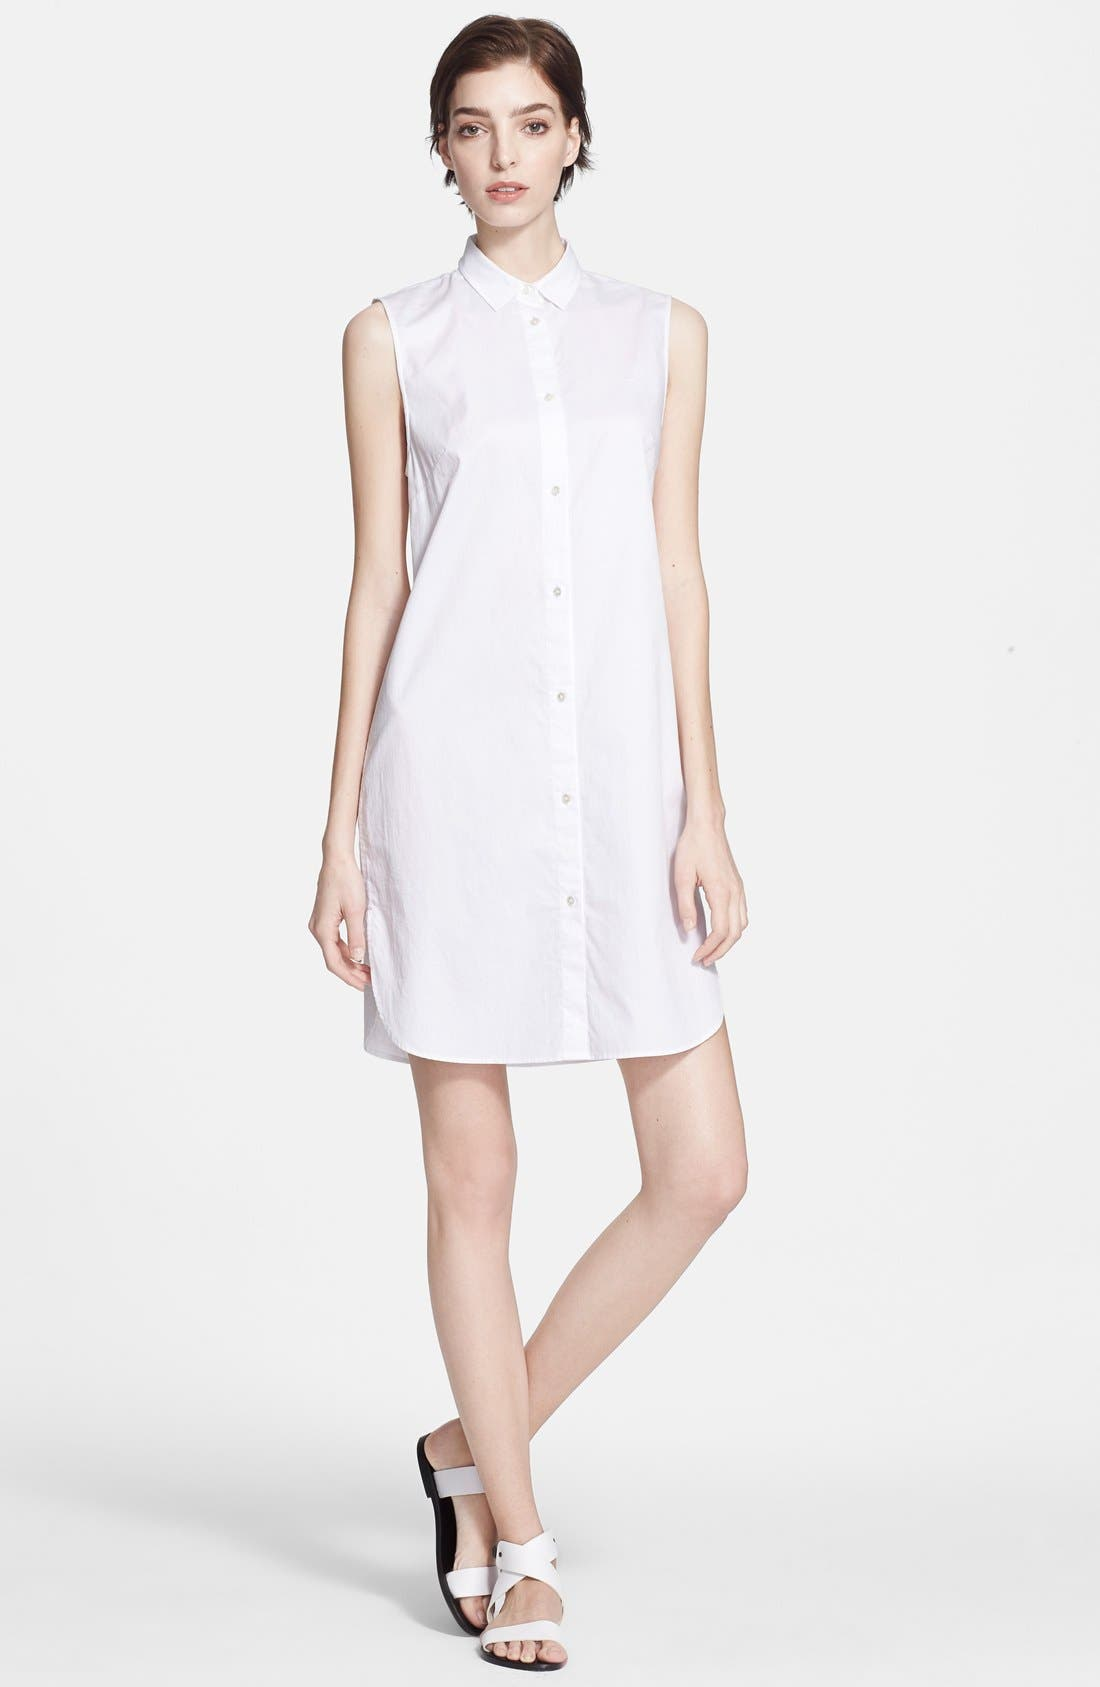 Main Image - T by Alexander Wang Cotton Poplin Shirtdress